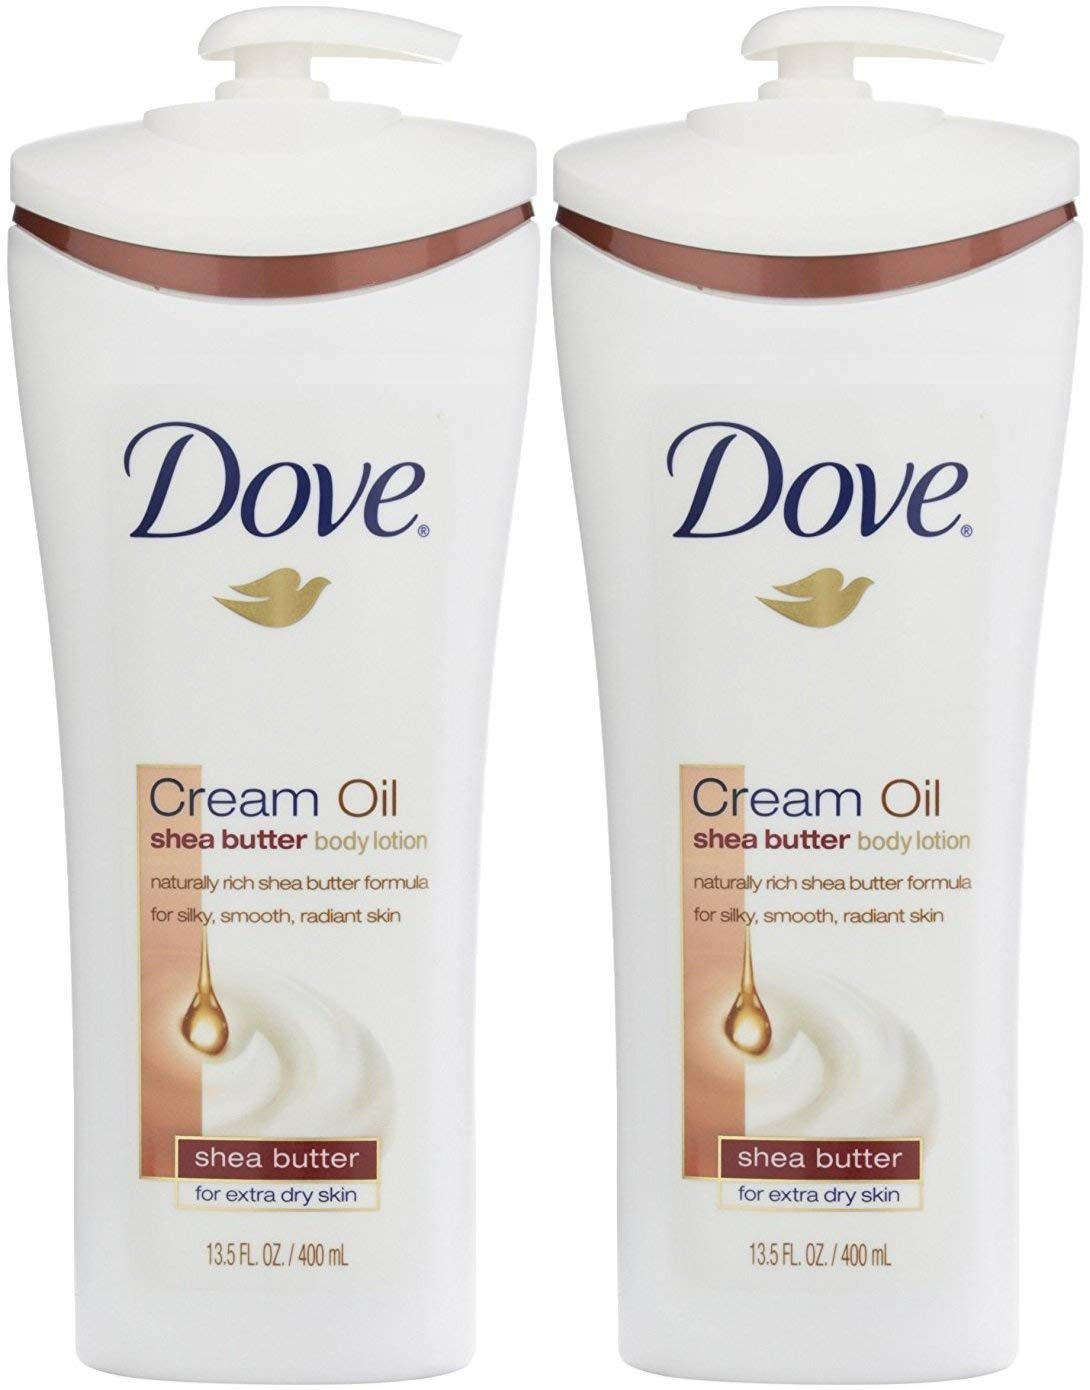 Dove Cream Oil Shea Butter Body Lotion - 13.5 oz - 2 pk